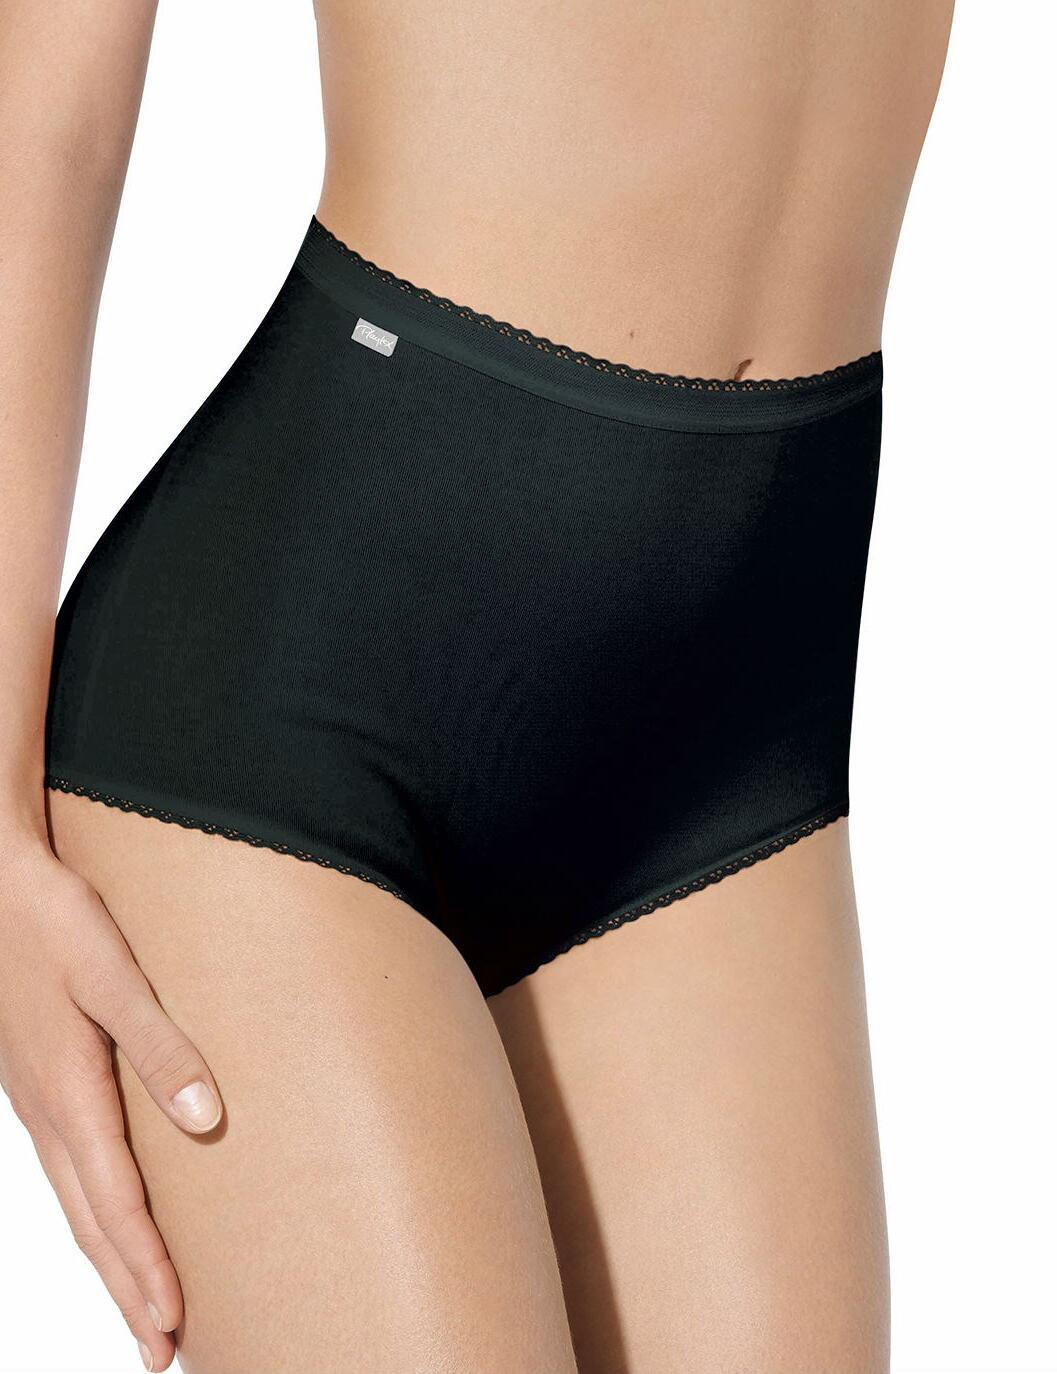 Playtex Pure Cotton: Maxi Brief, 3 Pack P00BQ - Black